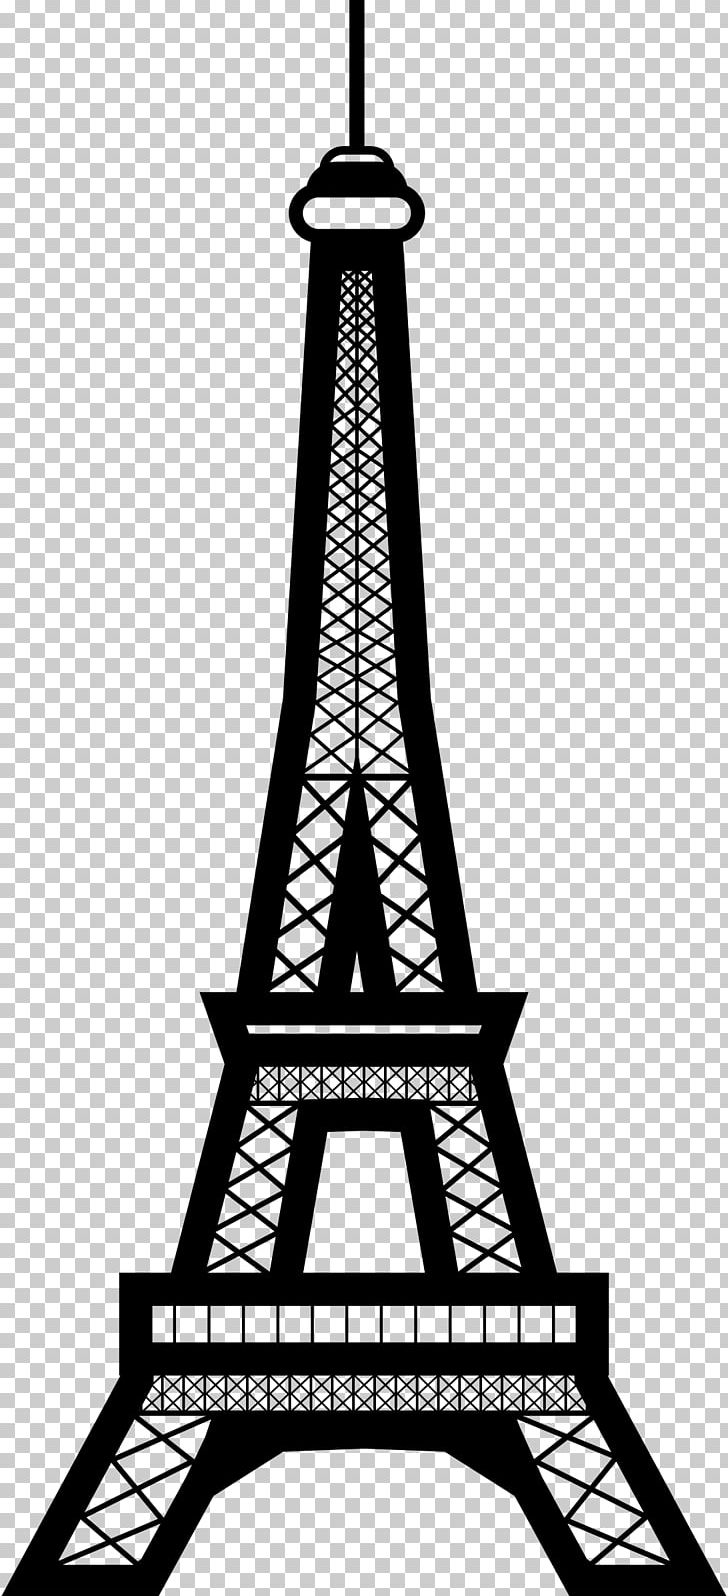 Eiffel Tower PNG, Clipart, Eiffel Tower Free PNG Download.